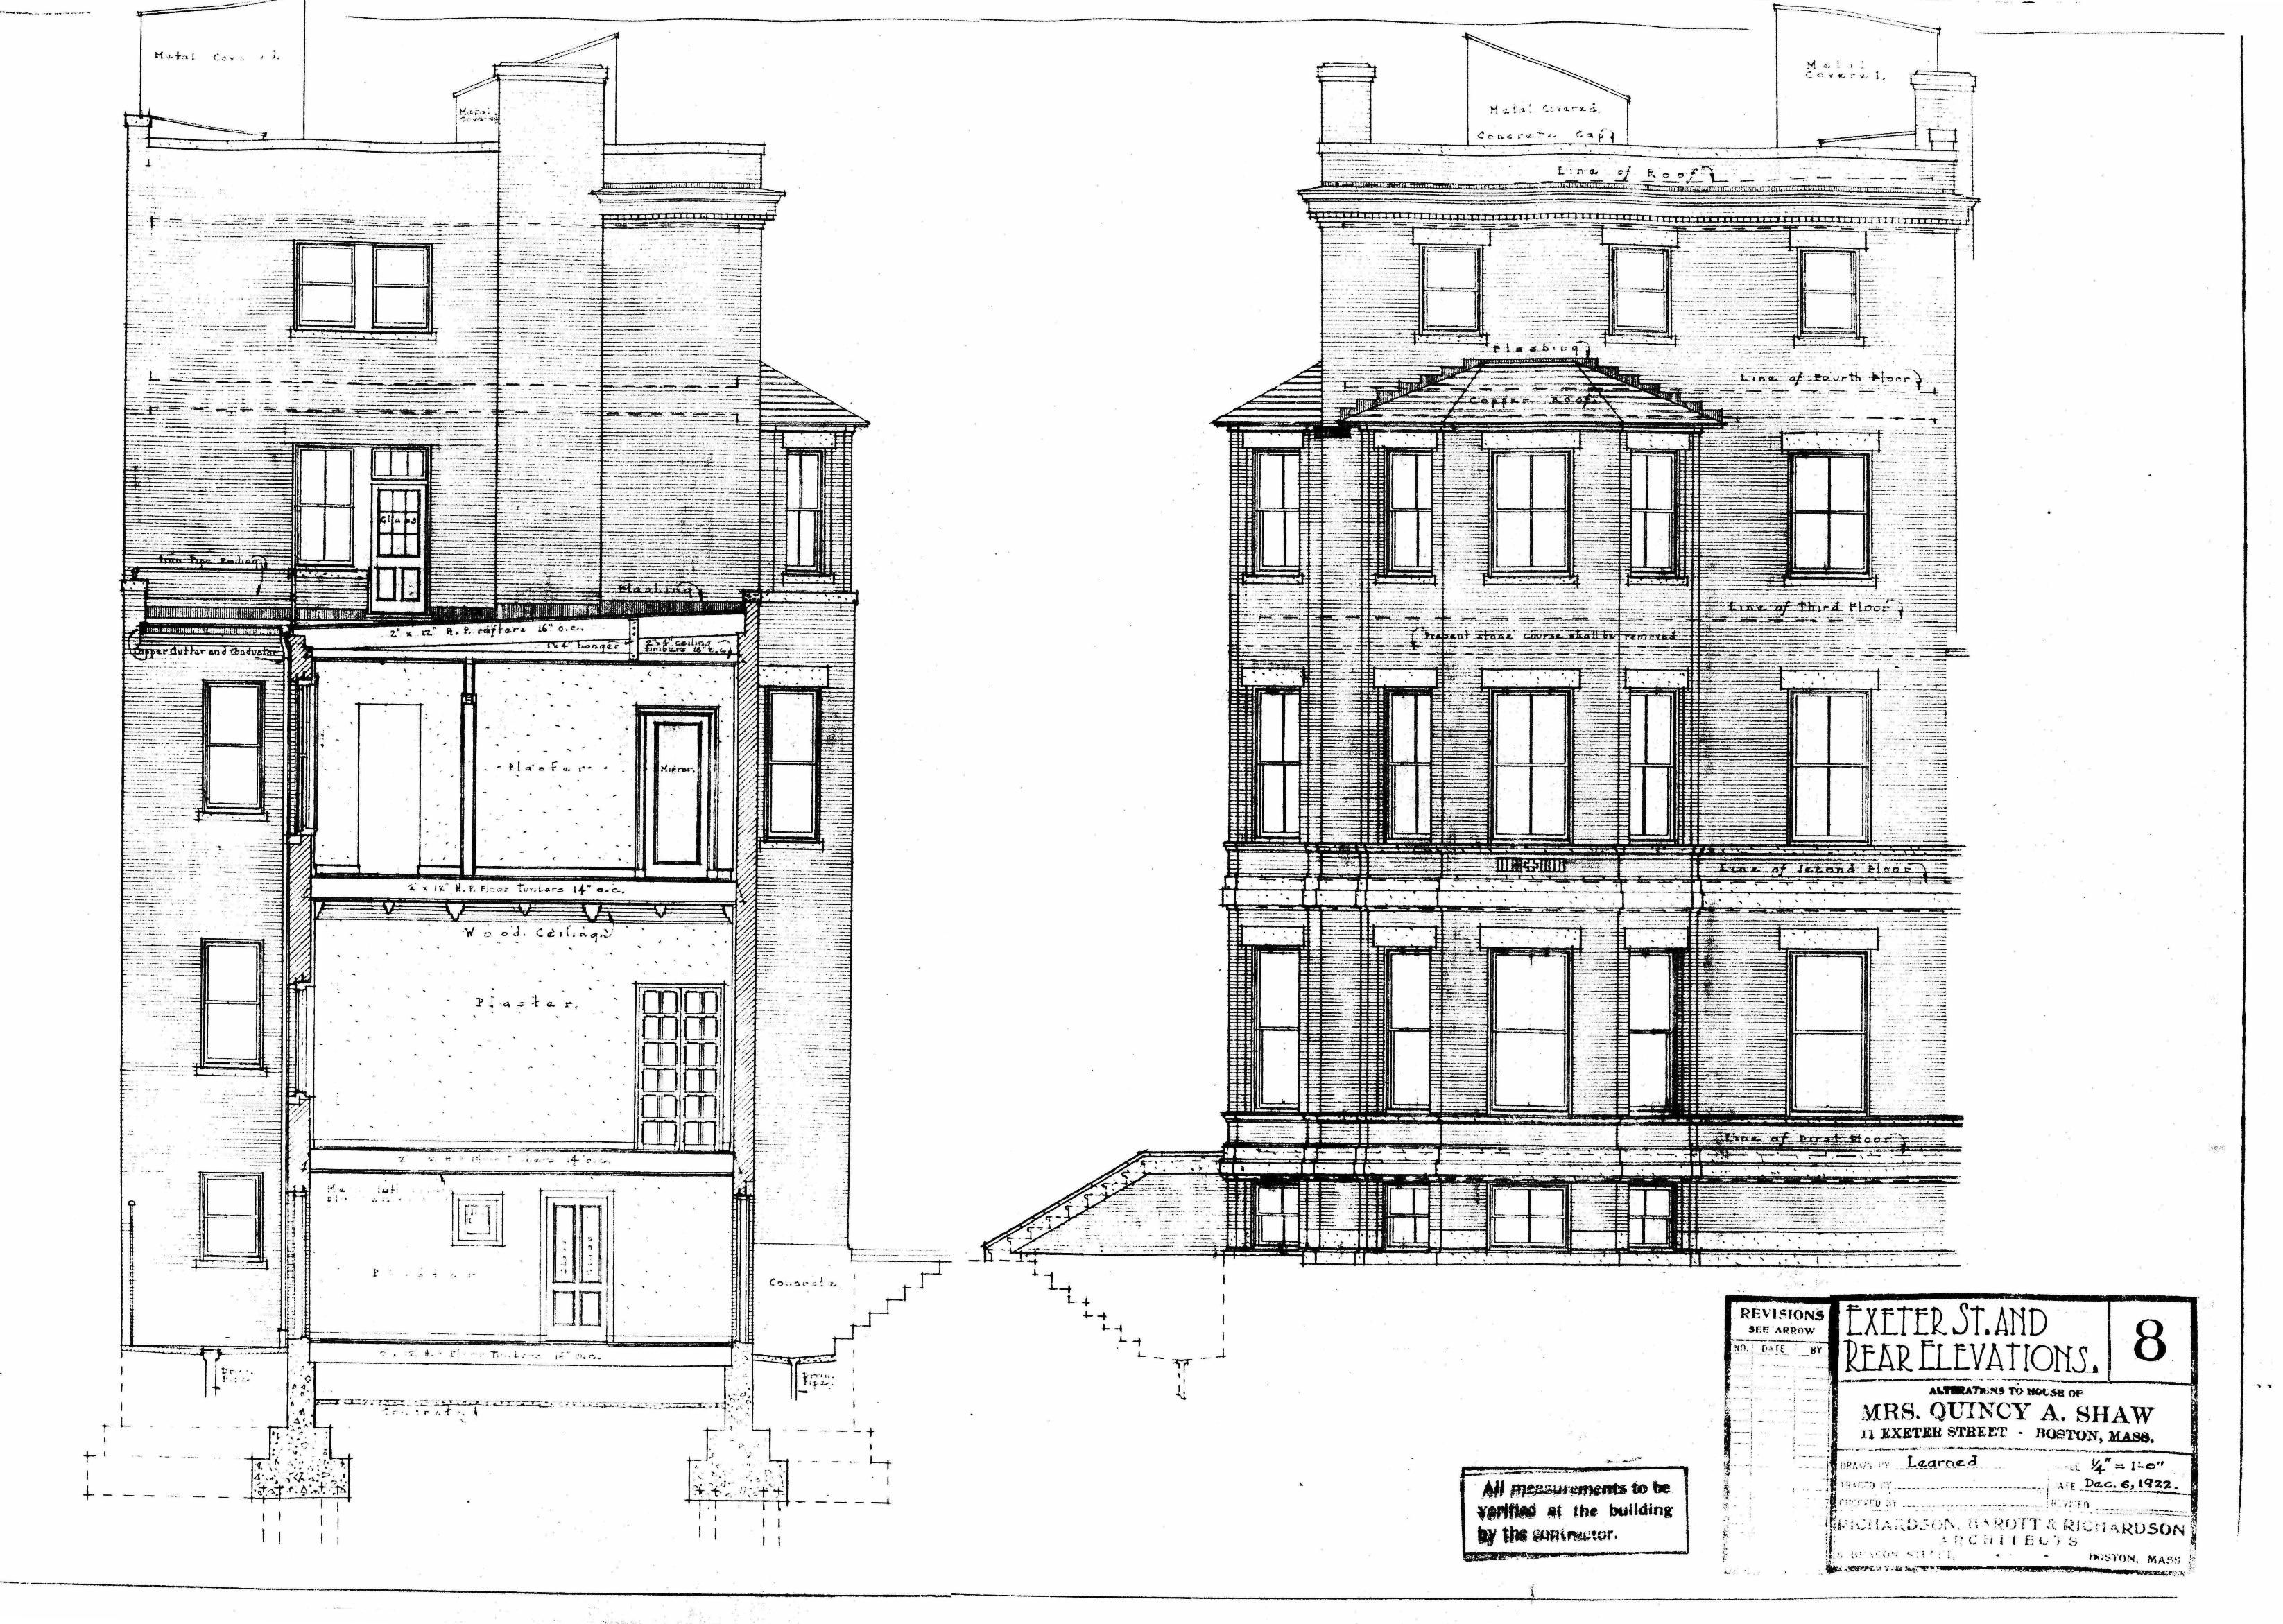 11 exeter back bay houses boston blueprints collection rendering of exeter st and western faades by architects richardson barott and malvernweather